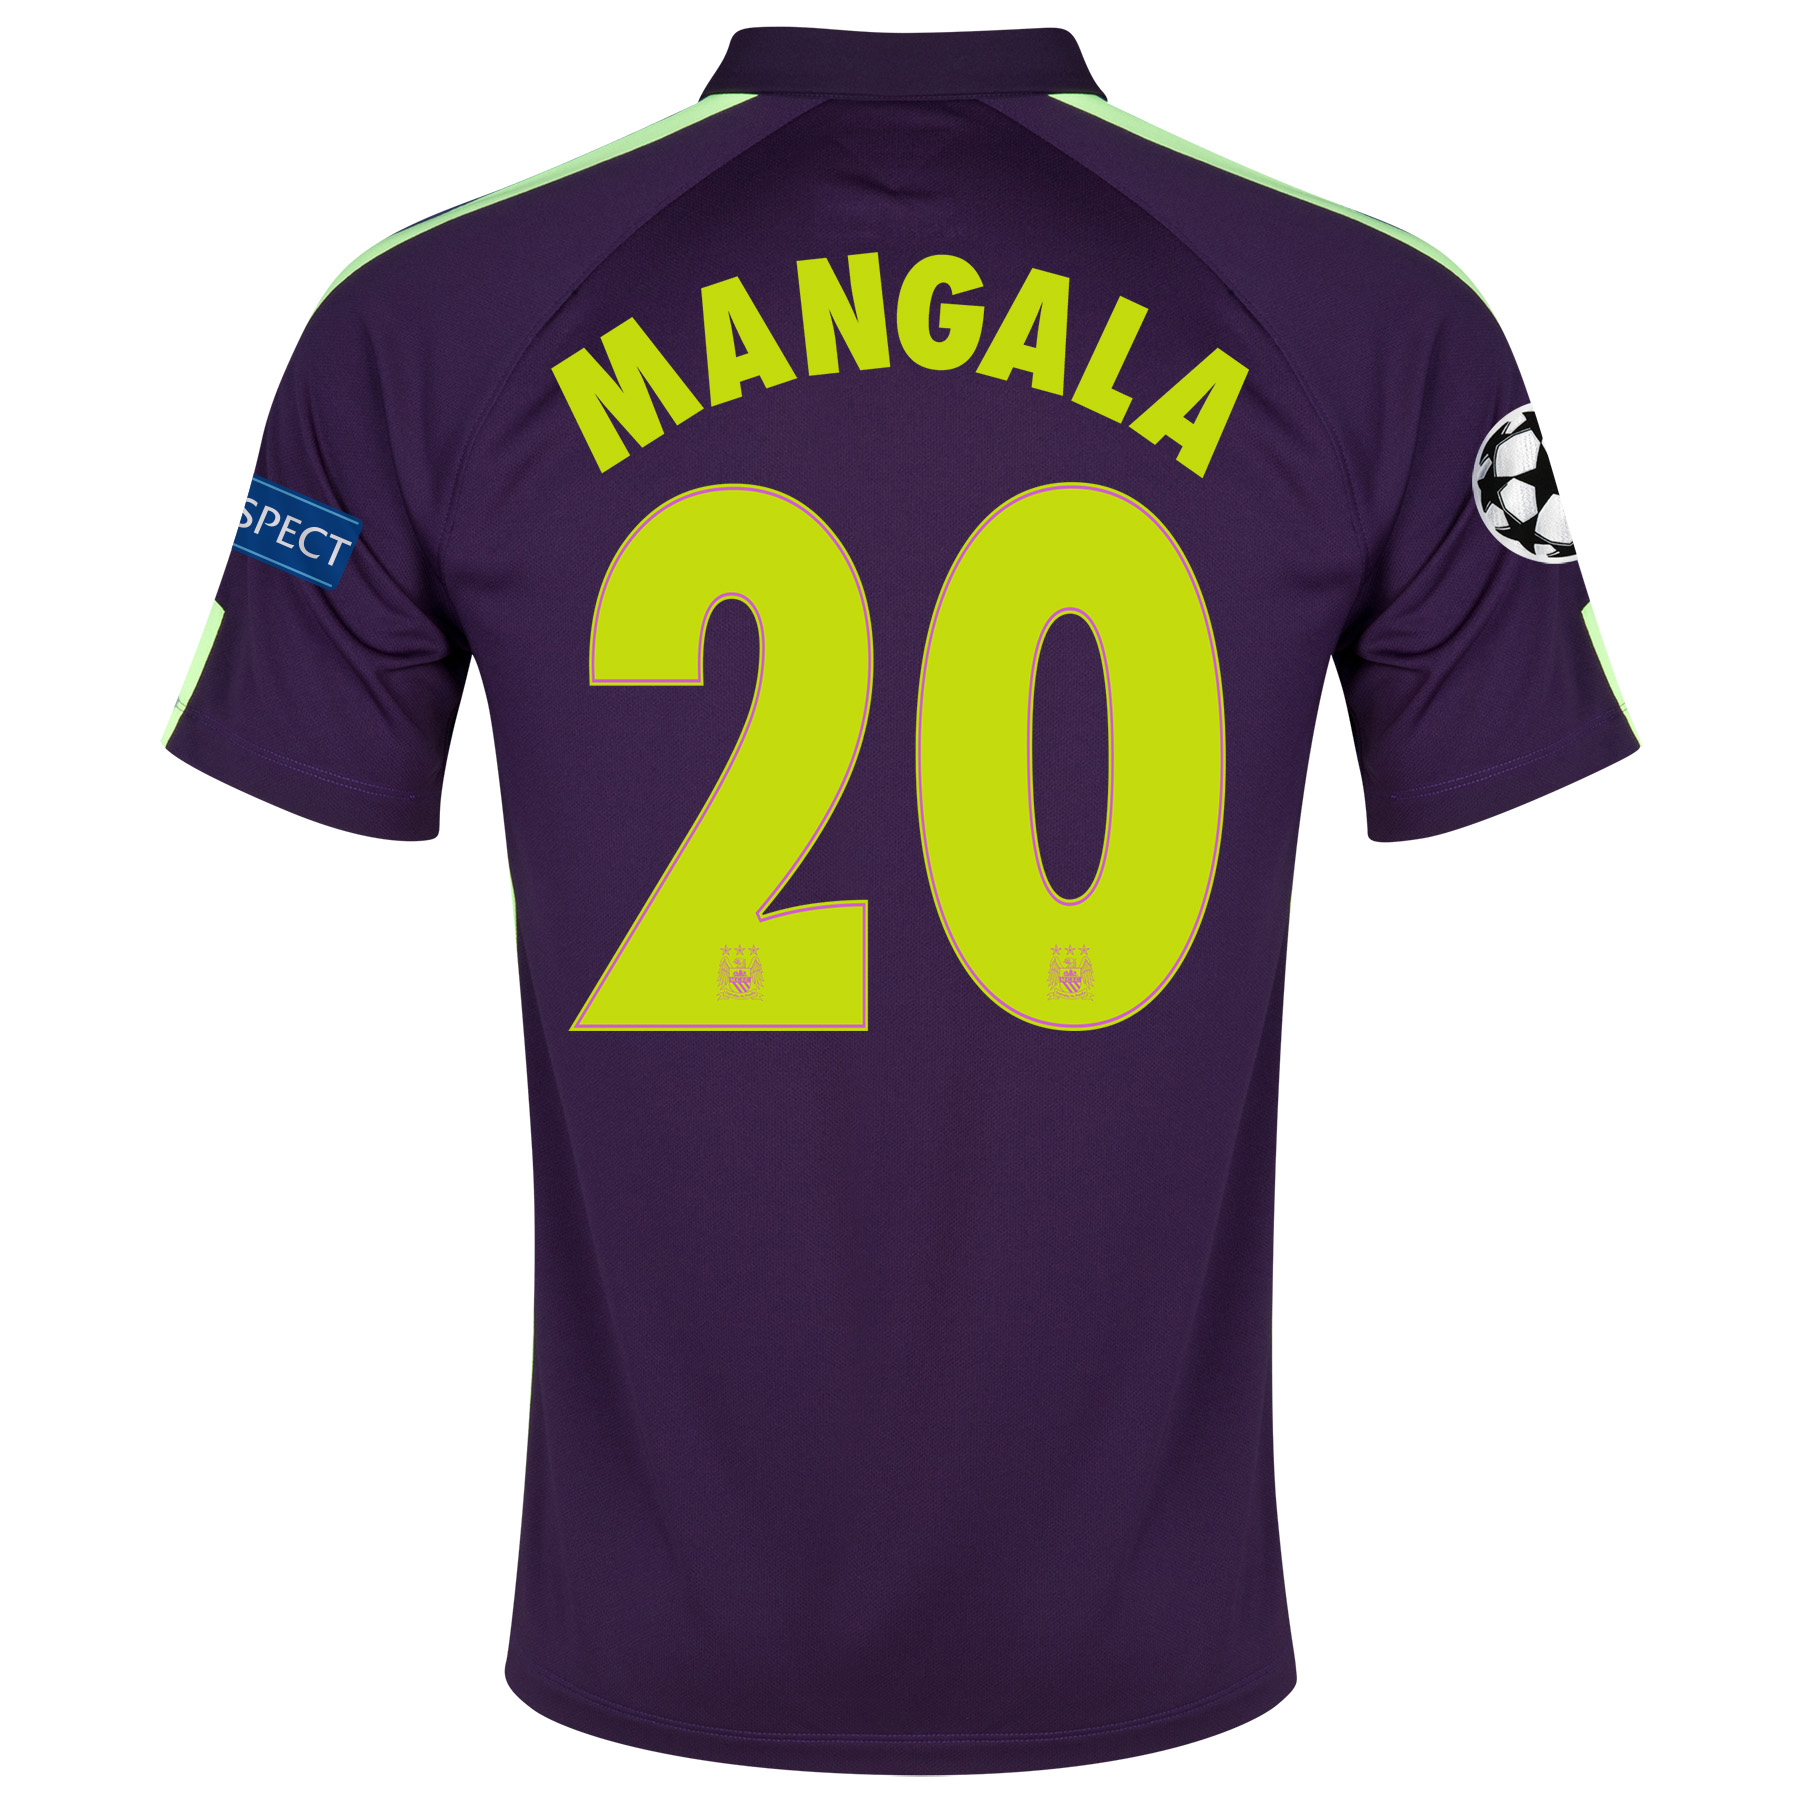 Manchester City UEFA Champions League Cup Away Shirt 2014/15 - Kids Purple with Mangala 20 printing